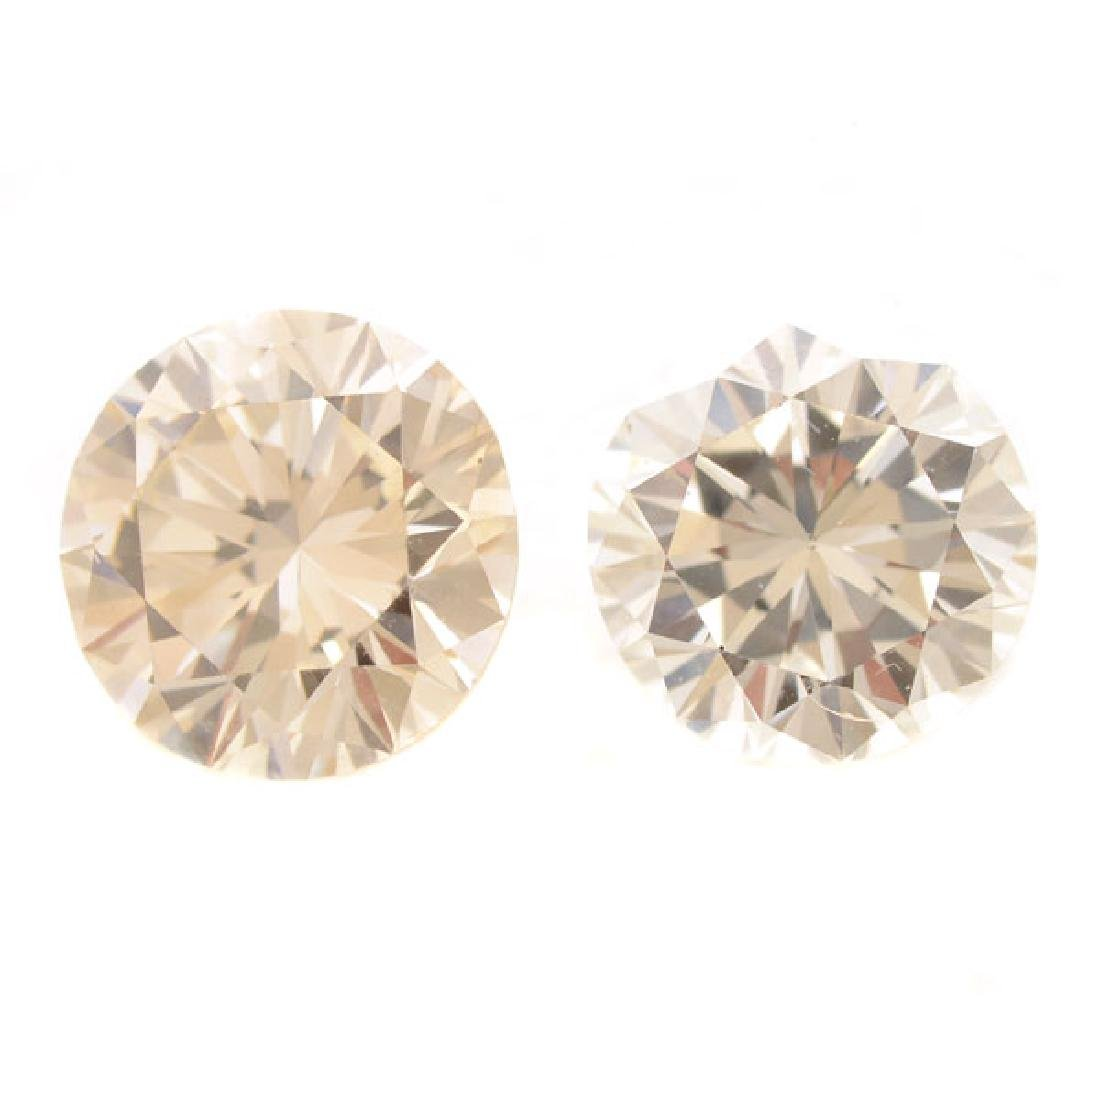 Collection of Two Unmounted Diamonds.